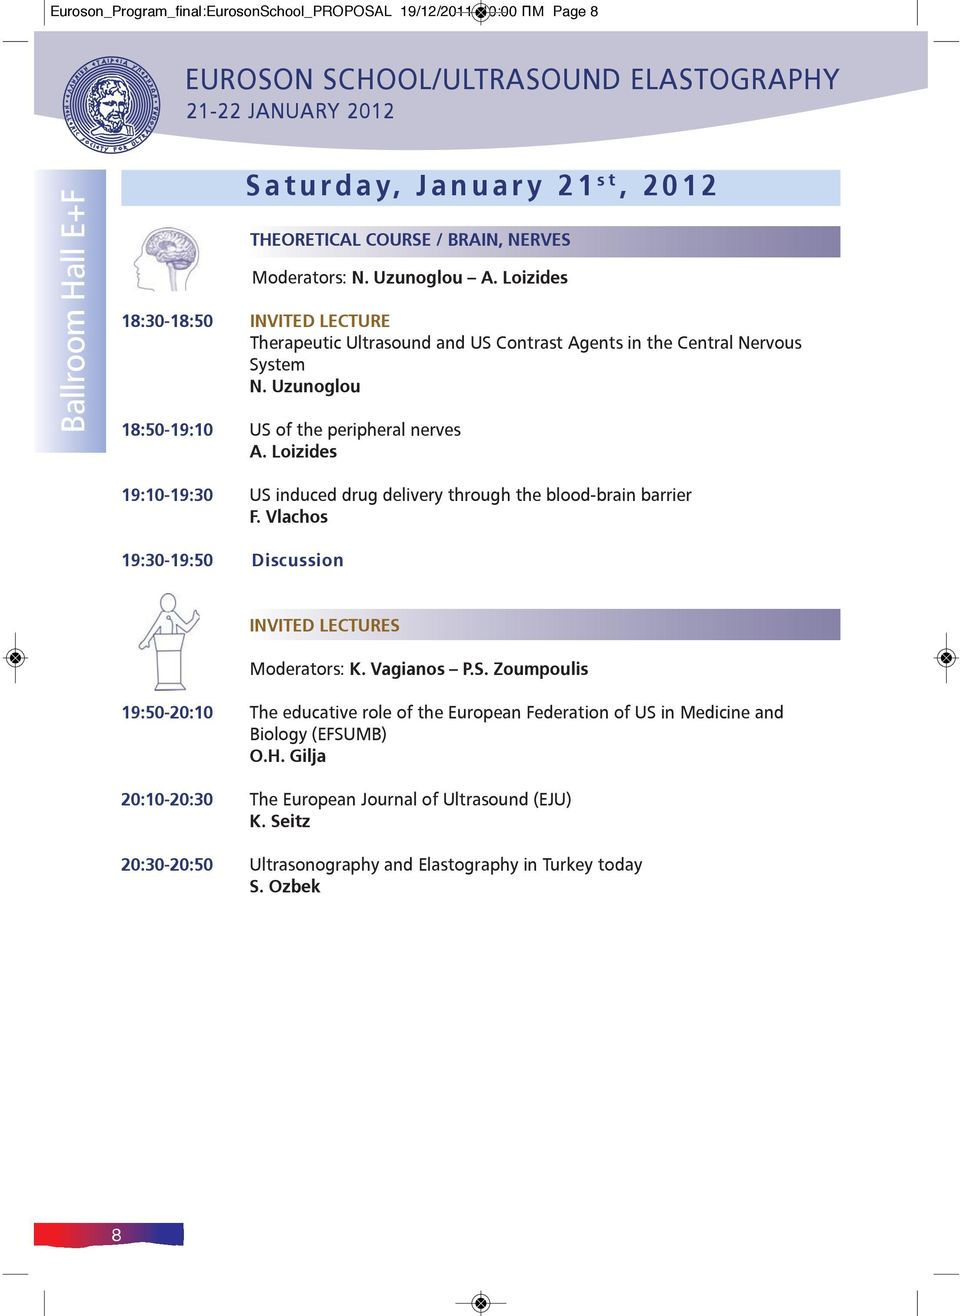 Loizides 19:10-19:30 US induced drug delivery through the blood-brain barrier F. Vlachos 19:30-19:50 Discussion INVITED LECTURES Moderators: K. Vagianos P.S. Zoumpoulis 19:50-20:10 The educative role of the European Federation of US in Medicine and Biology (EFSUMB) Ο.